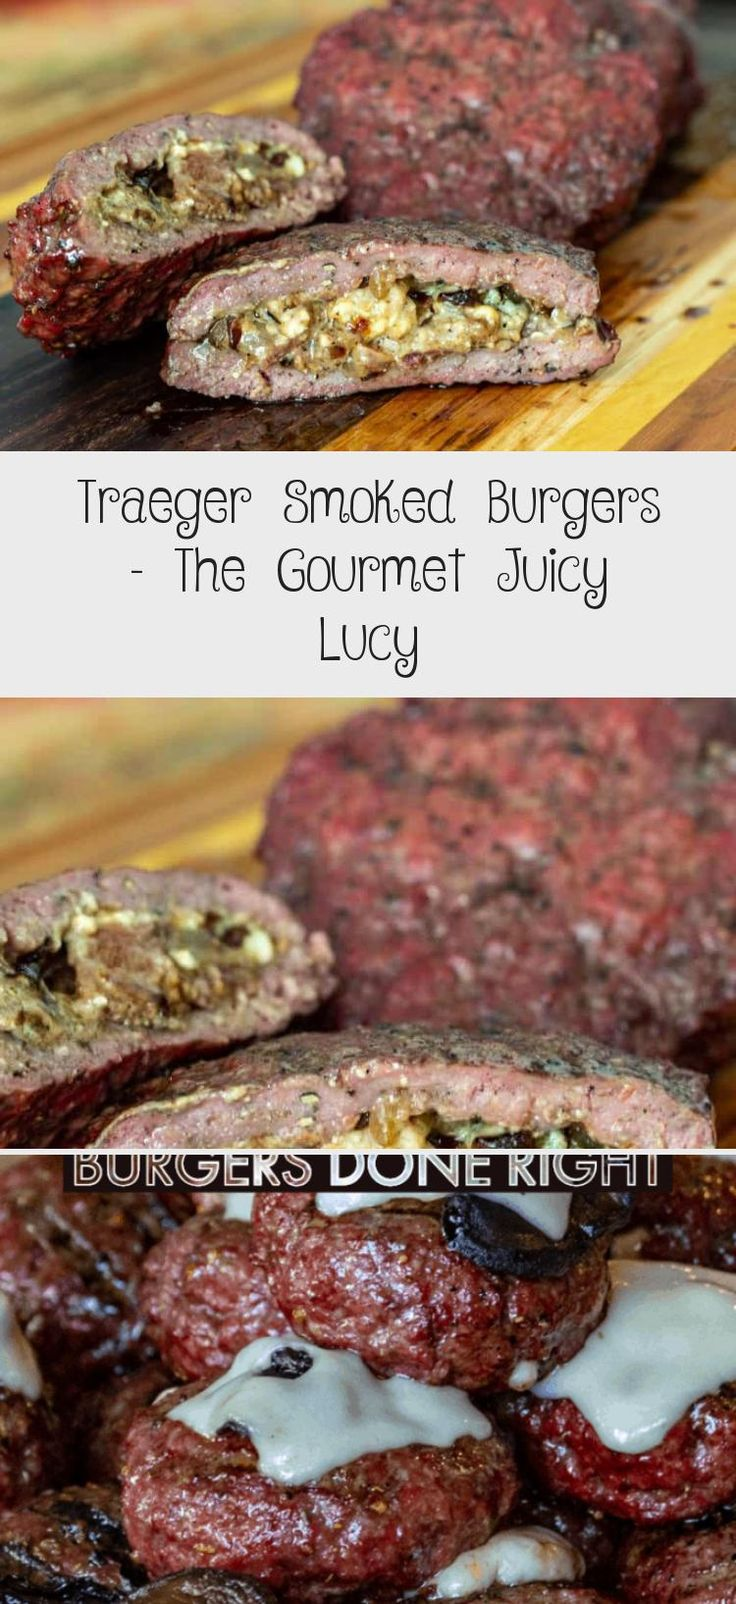 Traeger Smoked Burgers The Gourmet Juicy Lucy Smoked